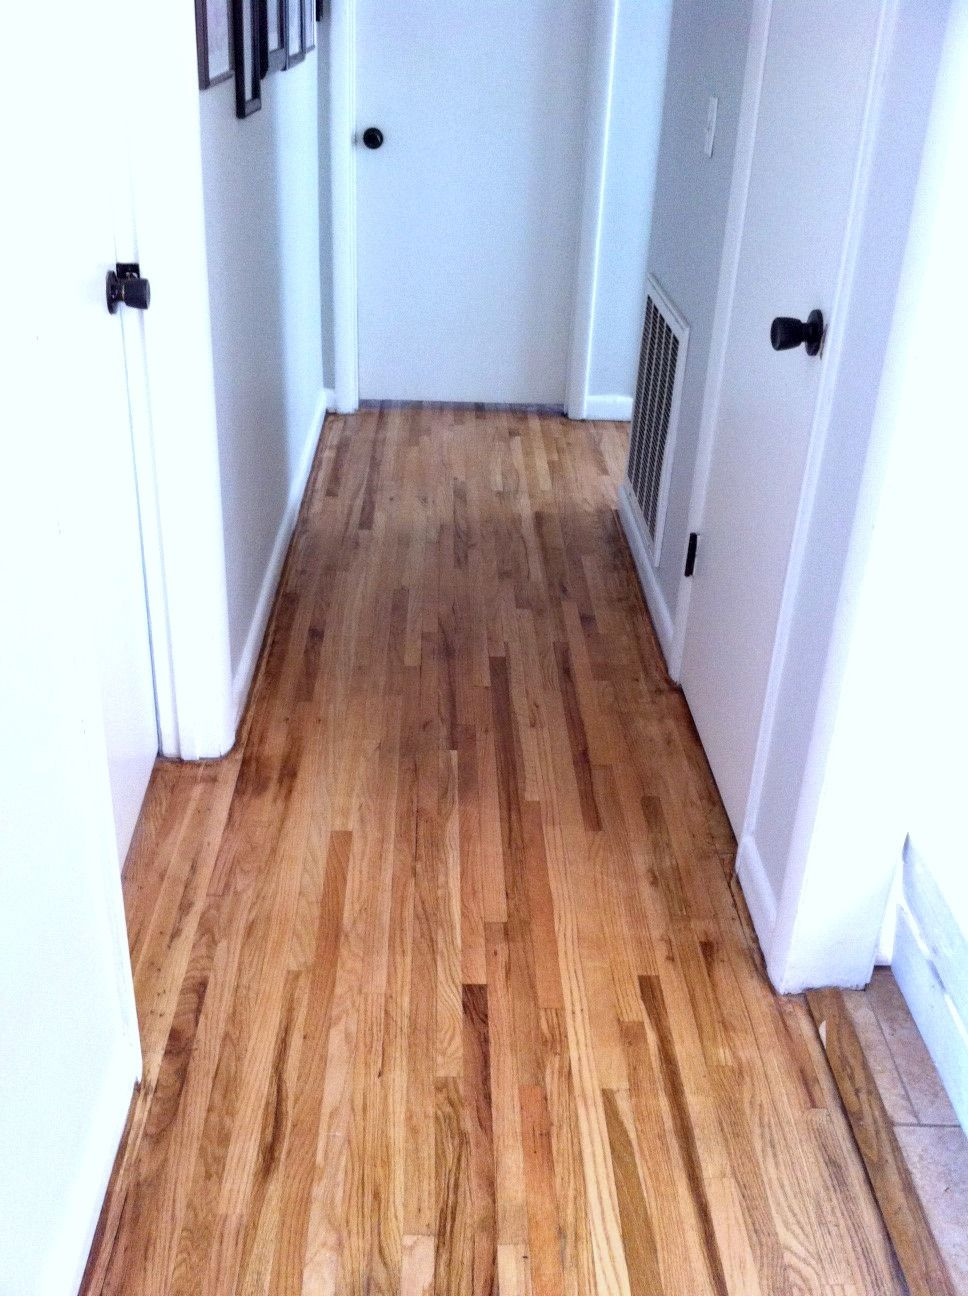 refinishing red oak hardwood floors of this is what happens when you dont listen to the folks at lowes in refinishing hardwood floors includes price breakdown mom in music city i didnt stain my floors i think the natural wood goes well with our house